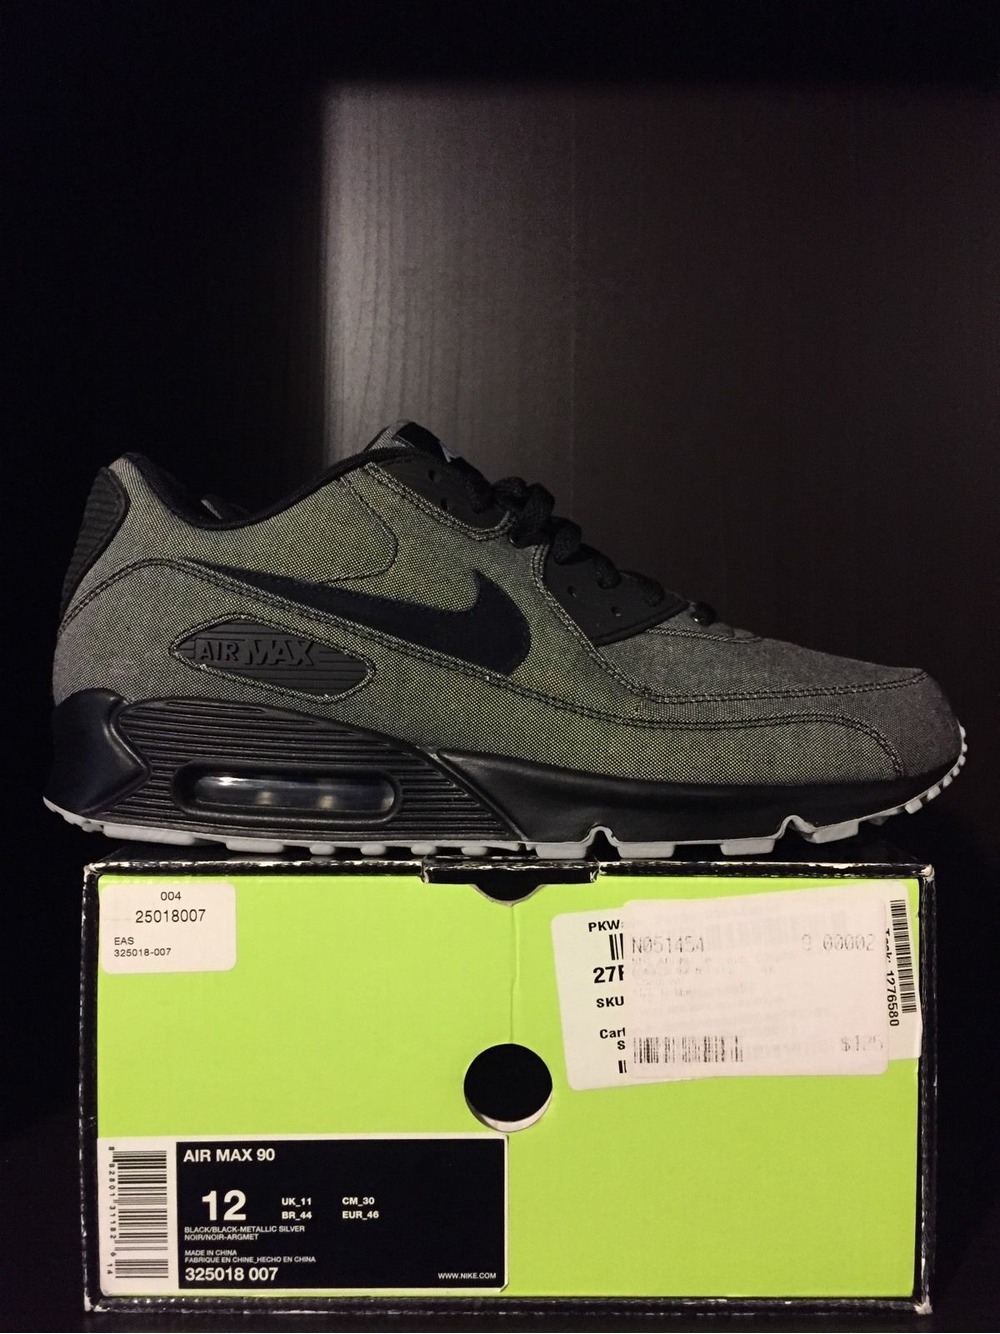 competitive price 26f1c 14d9d ... 2010 Nike Air Max 90 - Air Attack Pack - quotDenimquot .